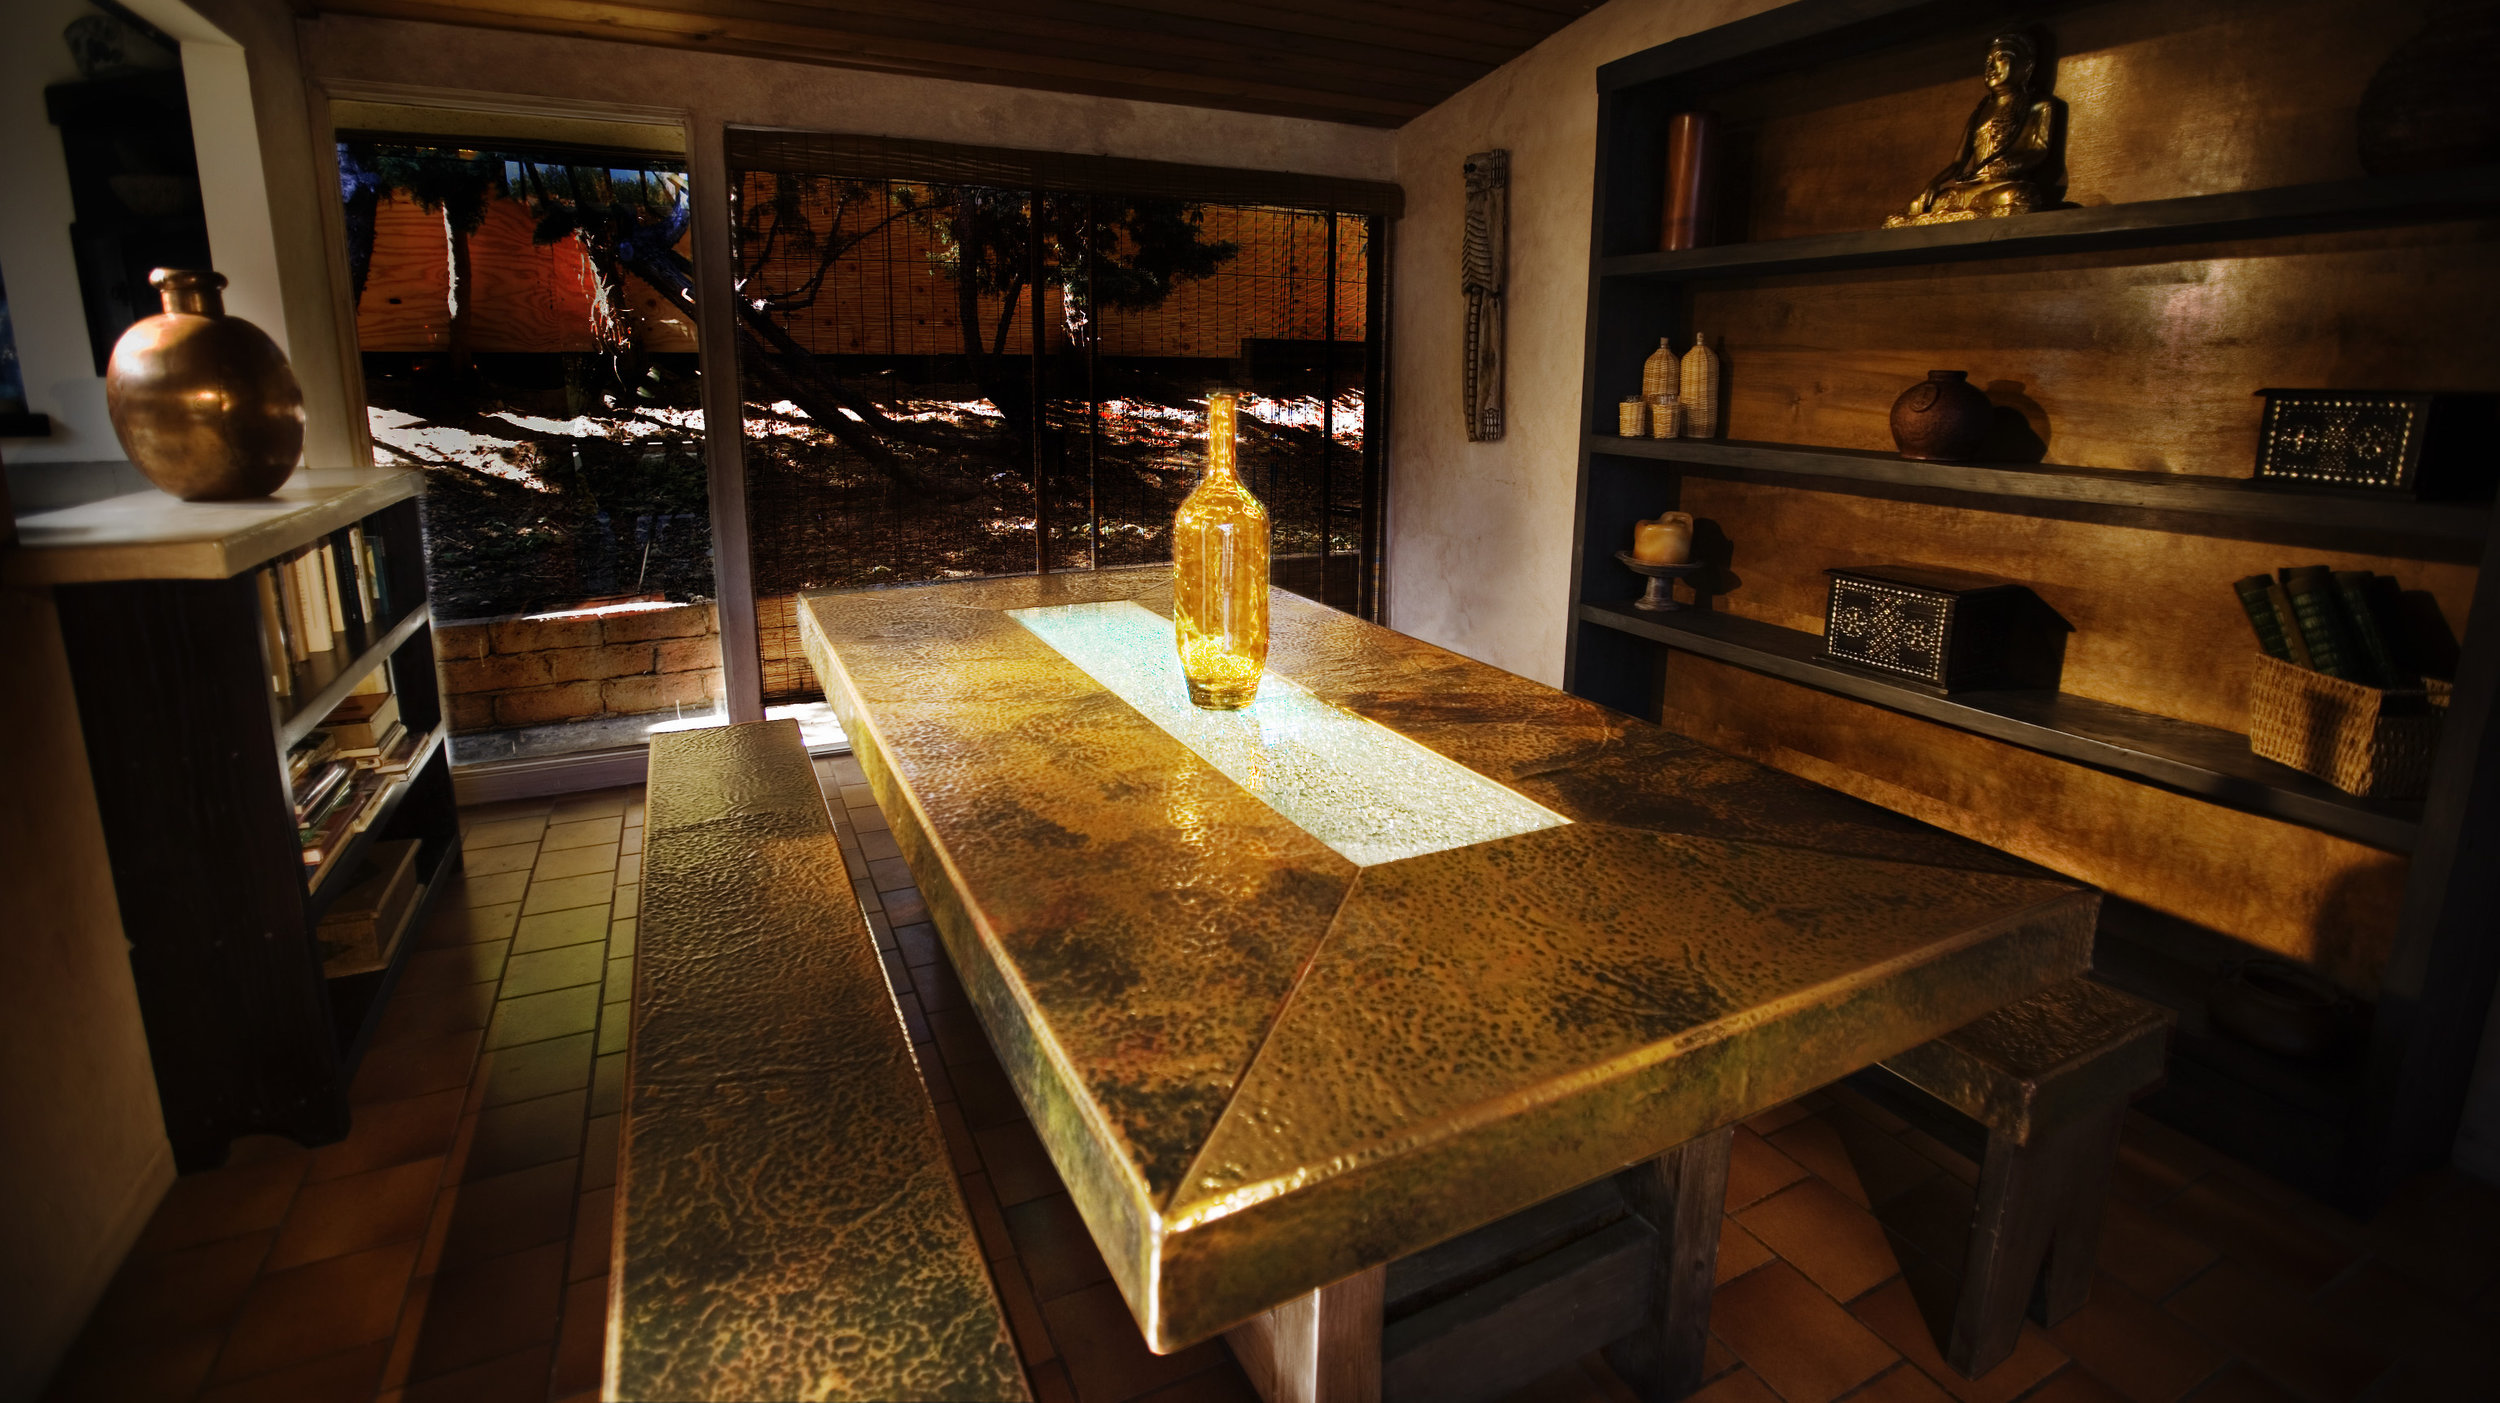 The Copper Table